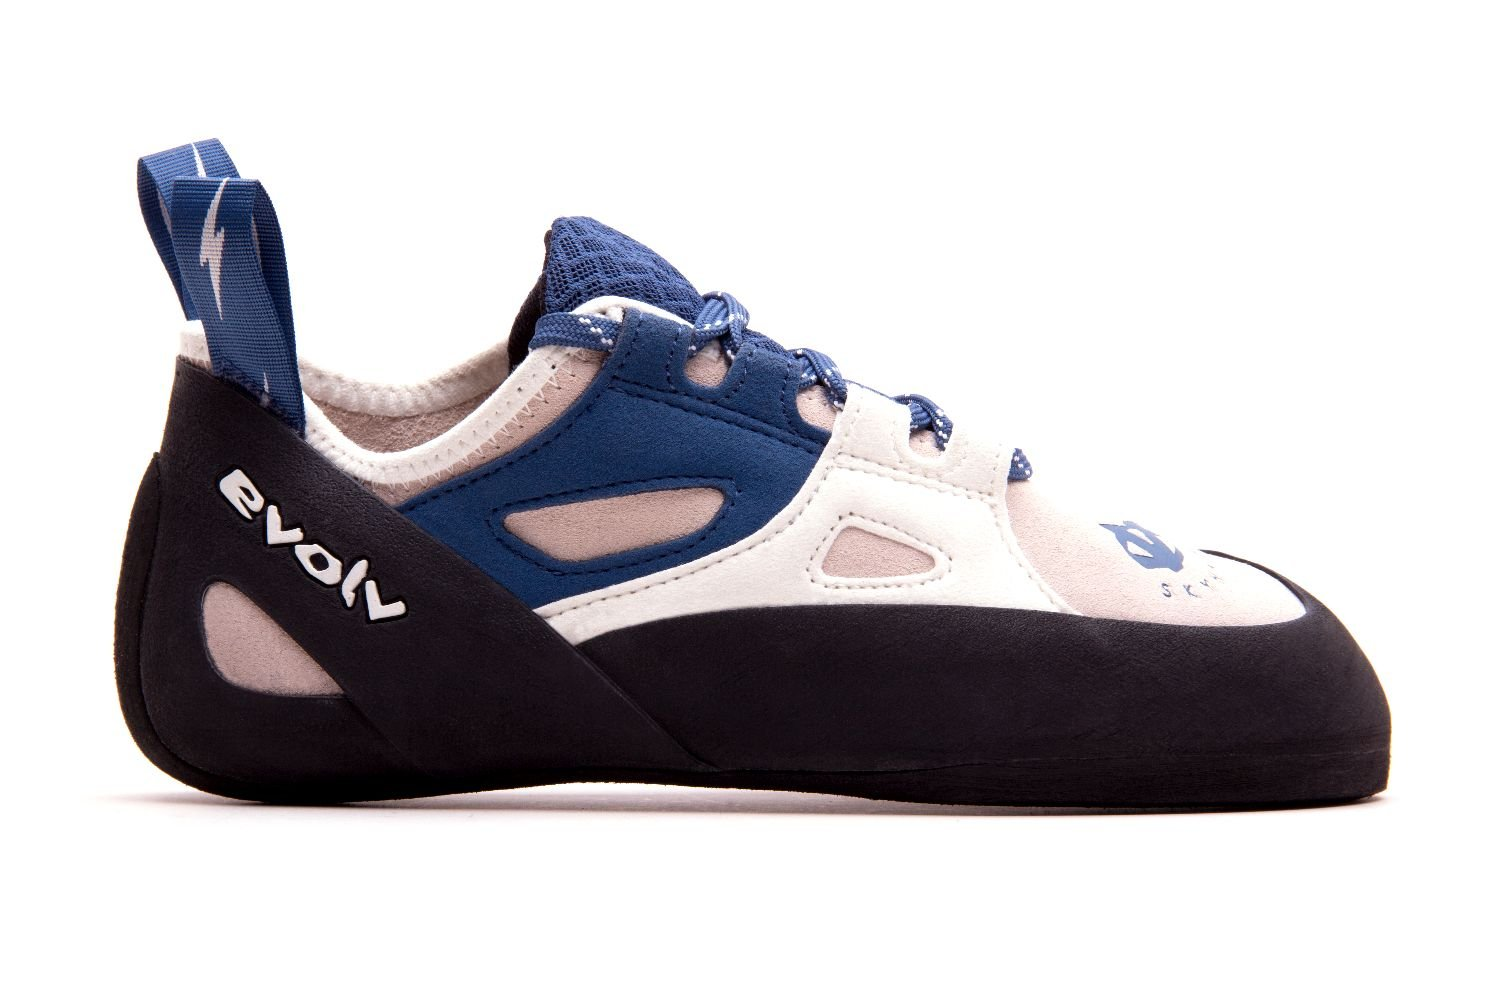 Evolv Skyhawk Climbing Shoe - Women's White/Blue 6 by Evolv